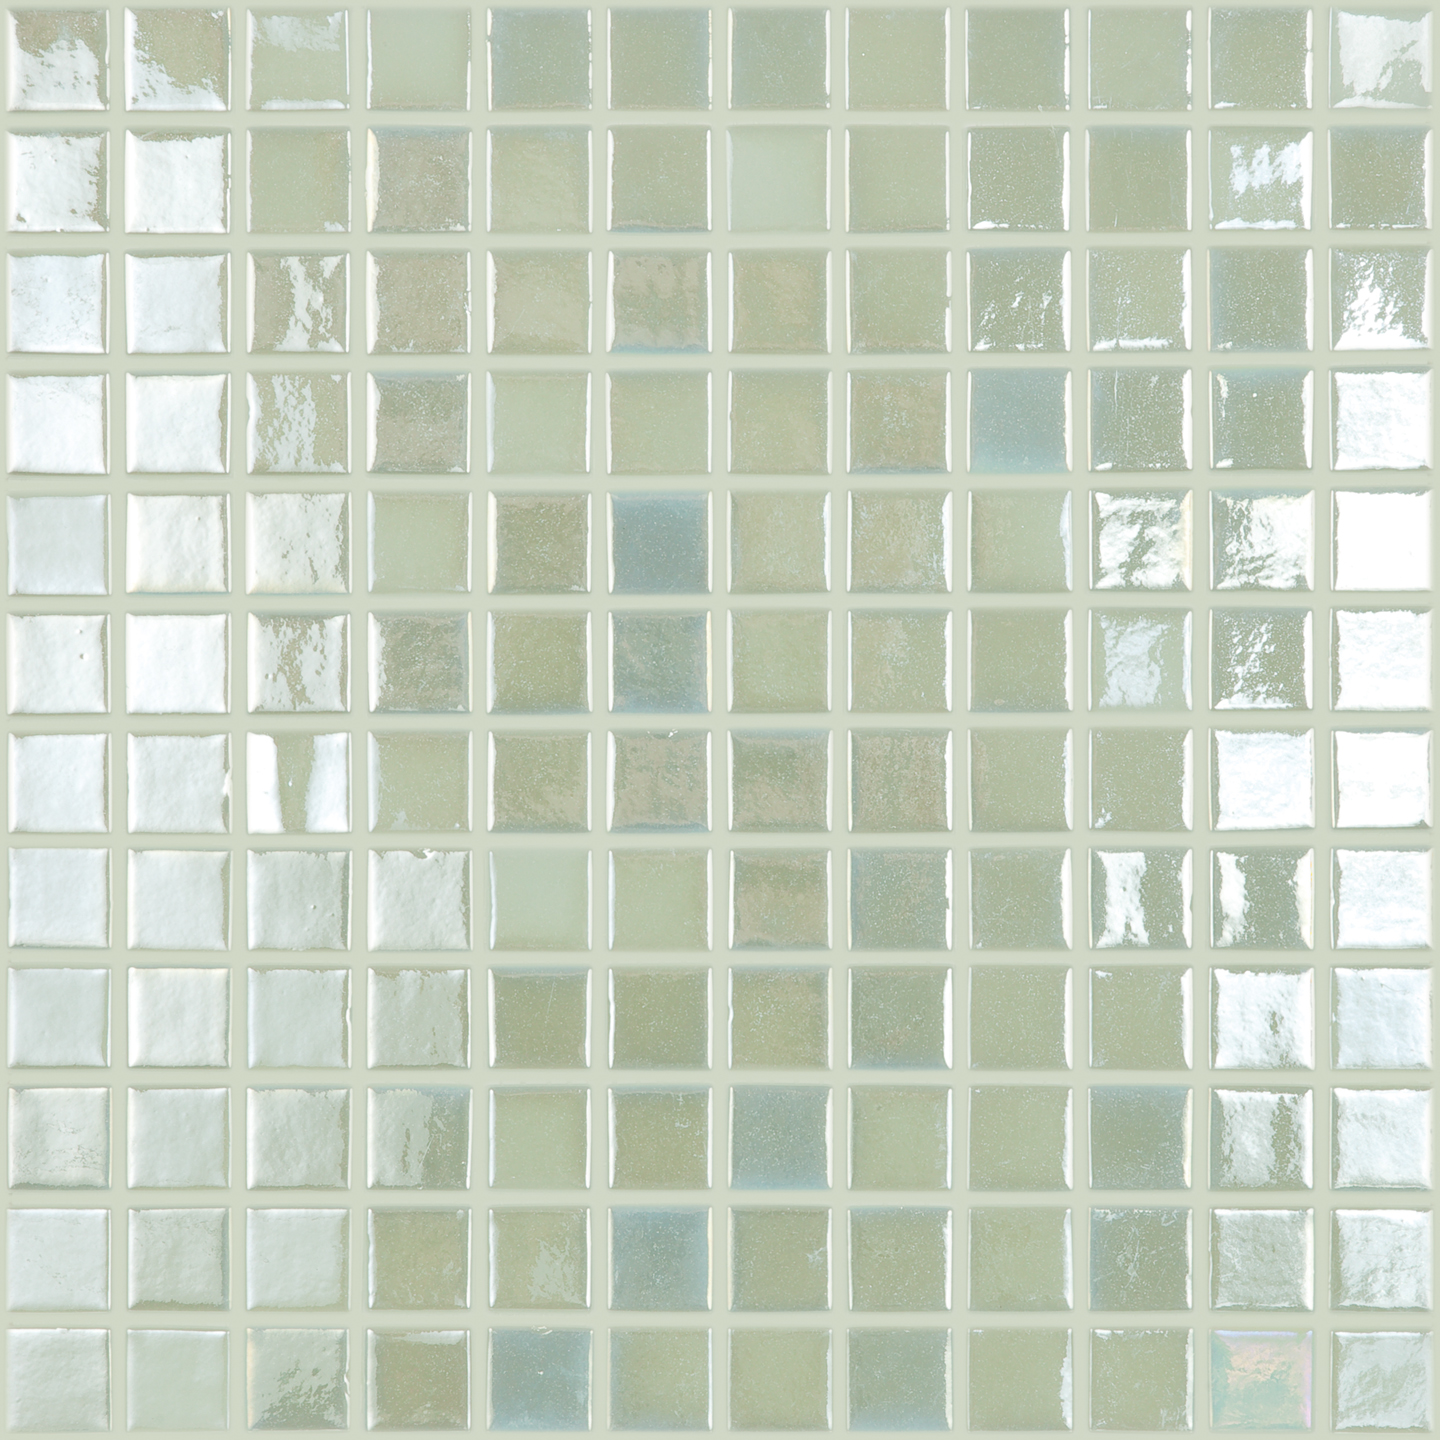 "Fire Glass Pearl White #412 Vidrepur Glow in the Dark Glass Mosaic Tile, 25mm -1"", 1 sheet"